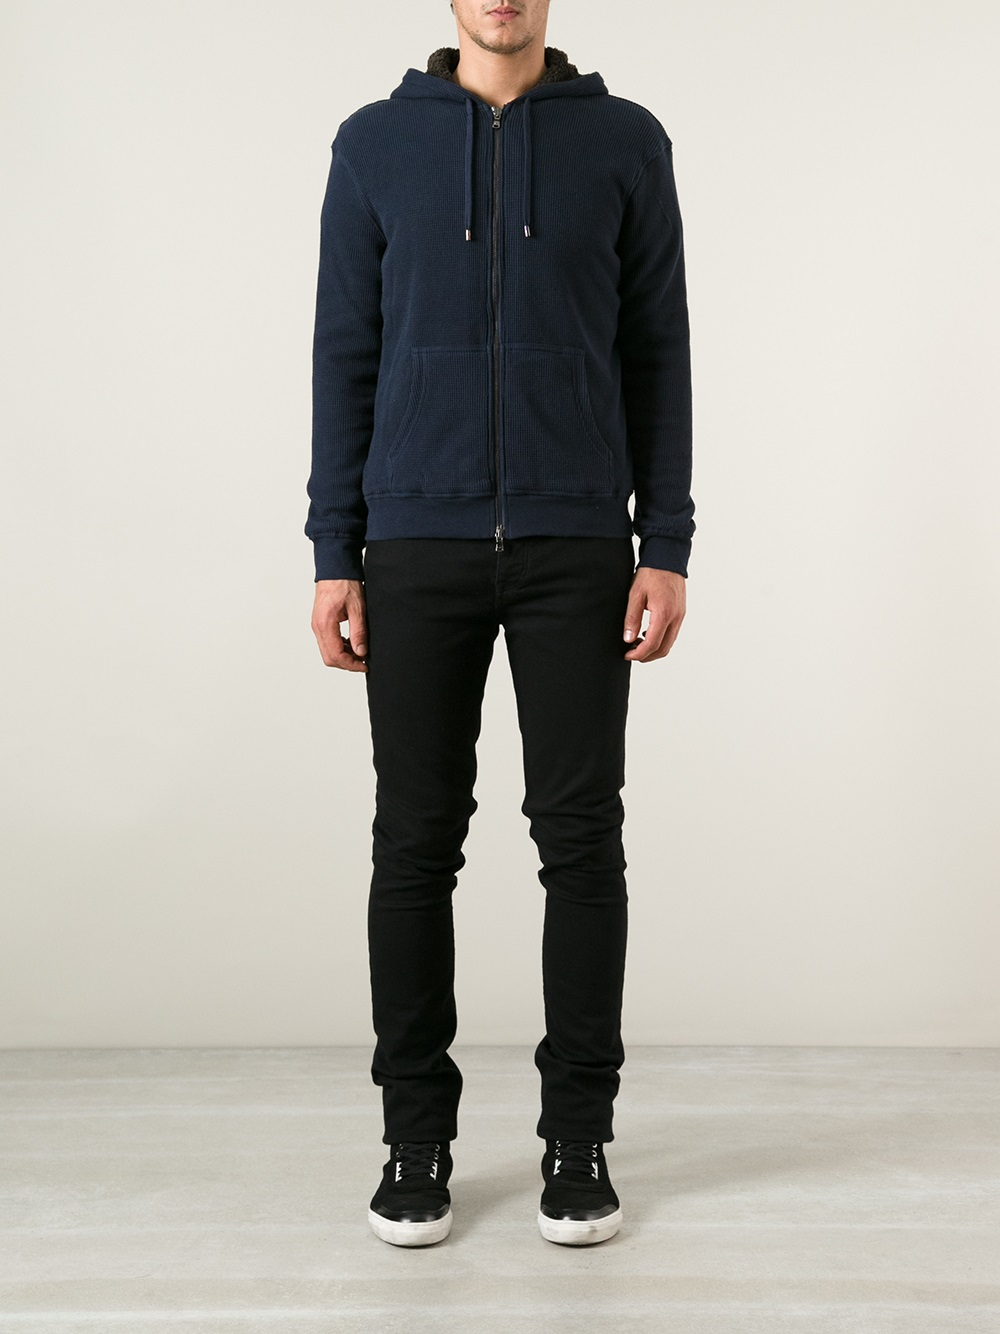 Michael Kors Faux Shearling Lined Hoodie in Blue for Men